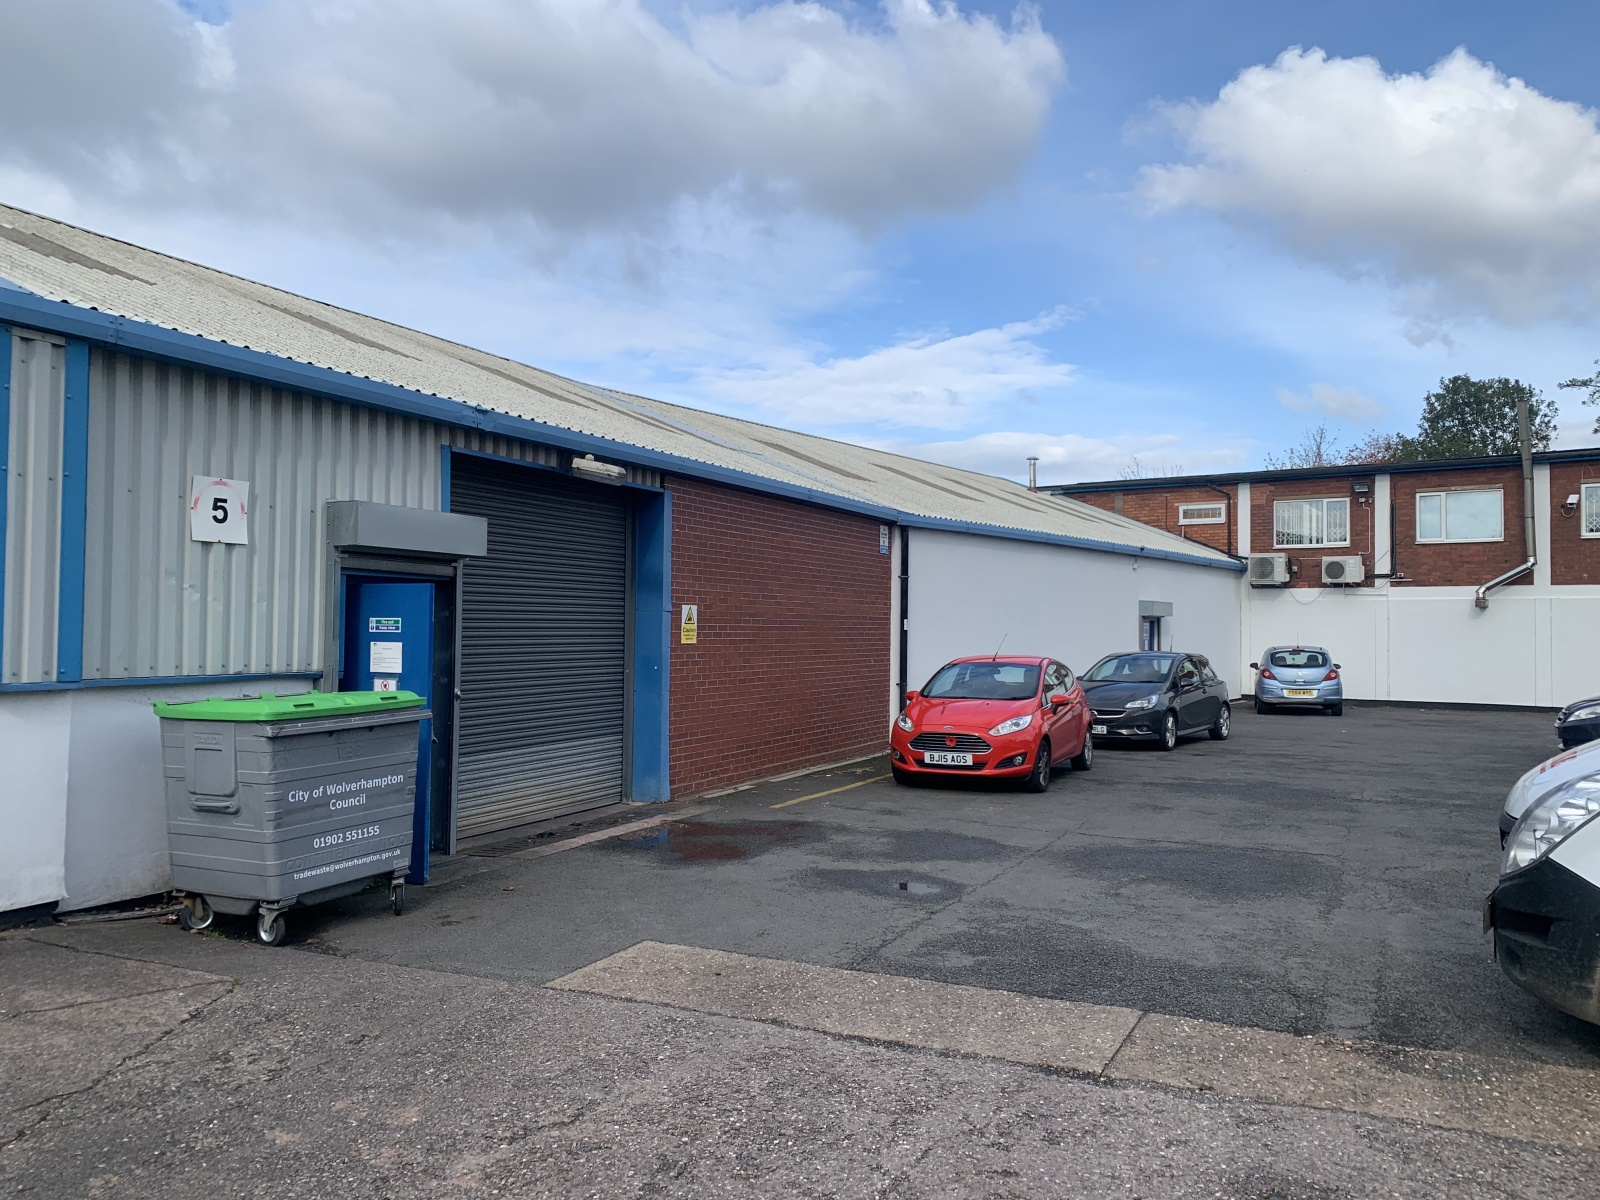 5-13 Reliance Trading Estate, Livingstone Road, Bilston, West Midlands